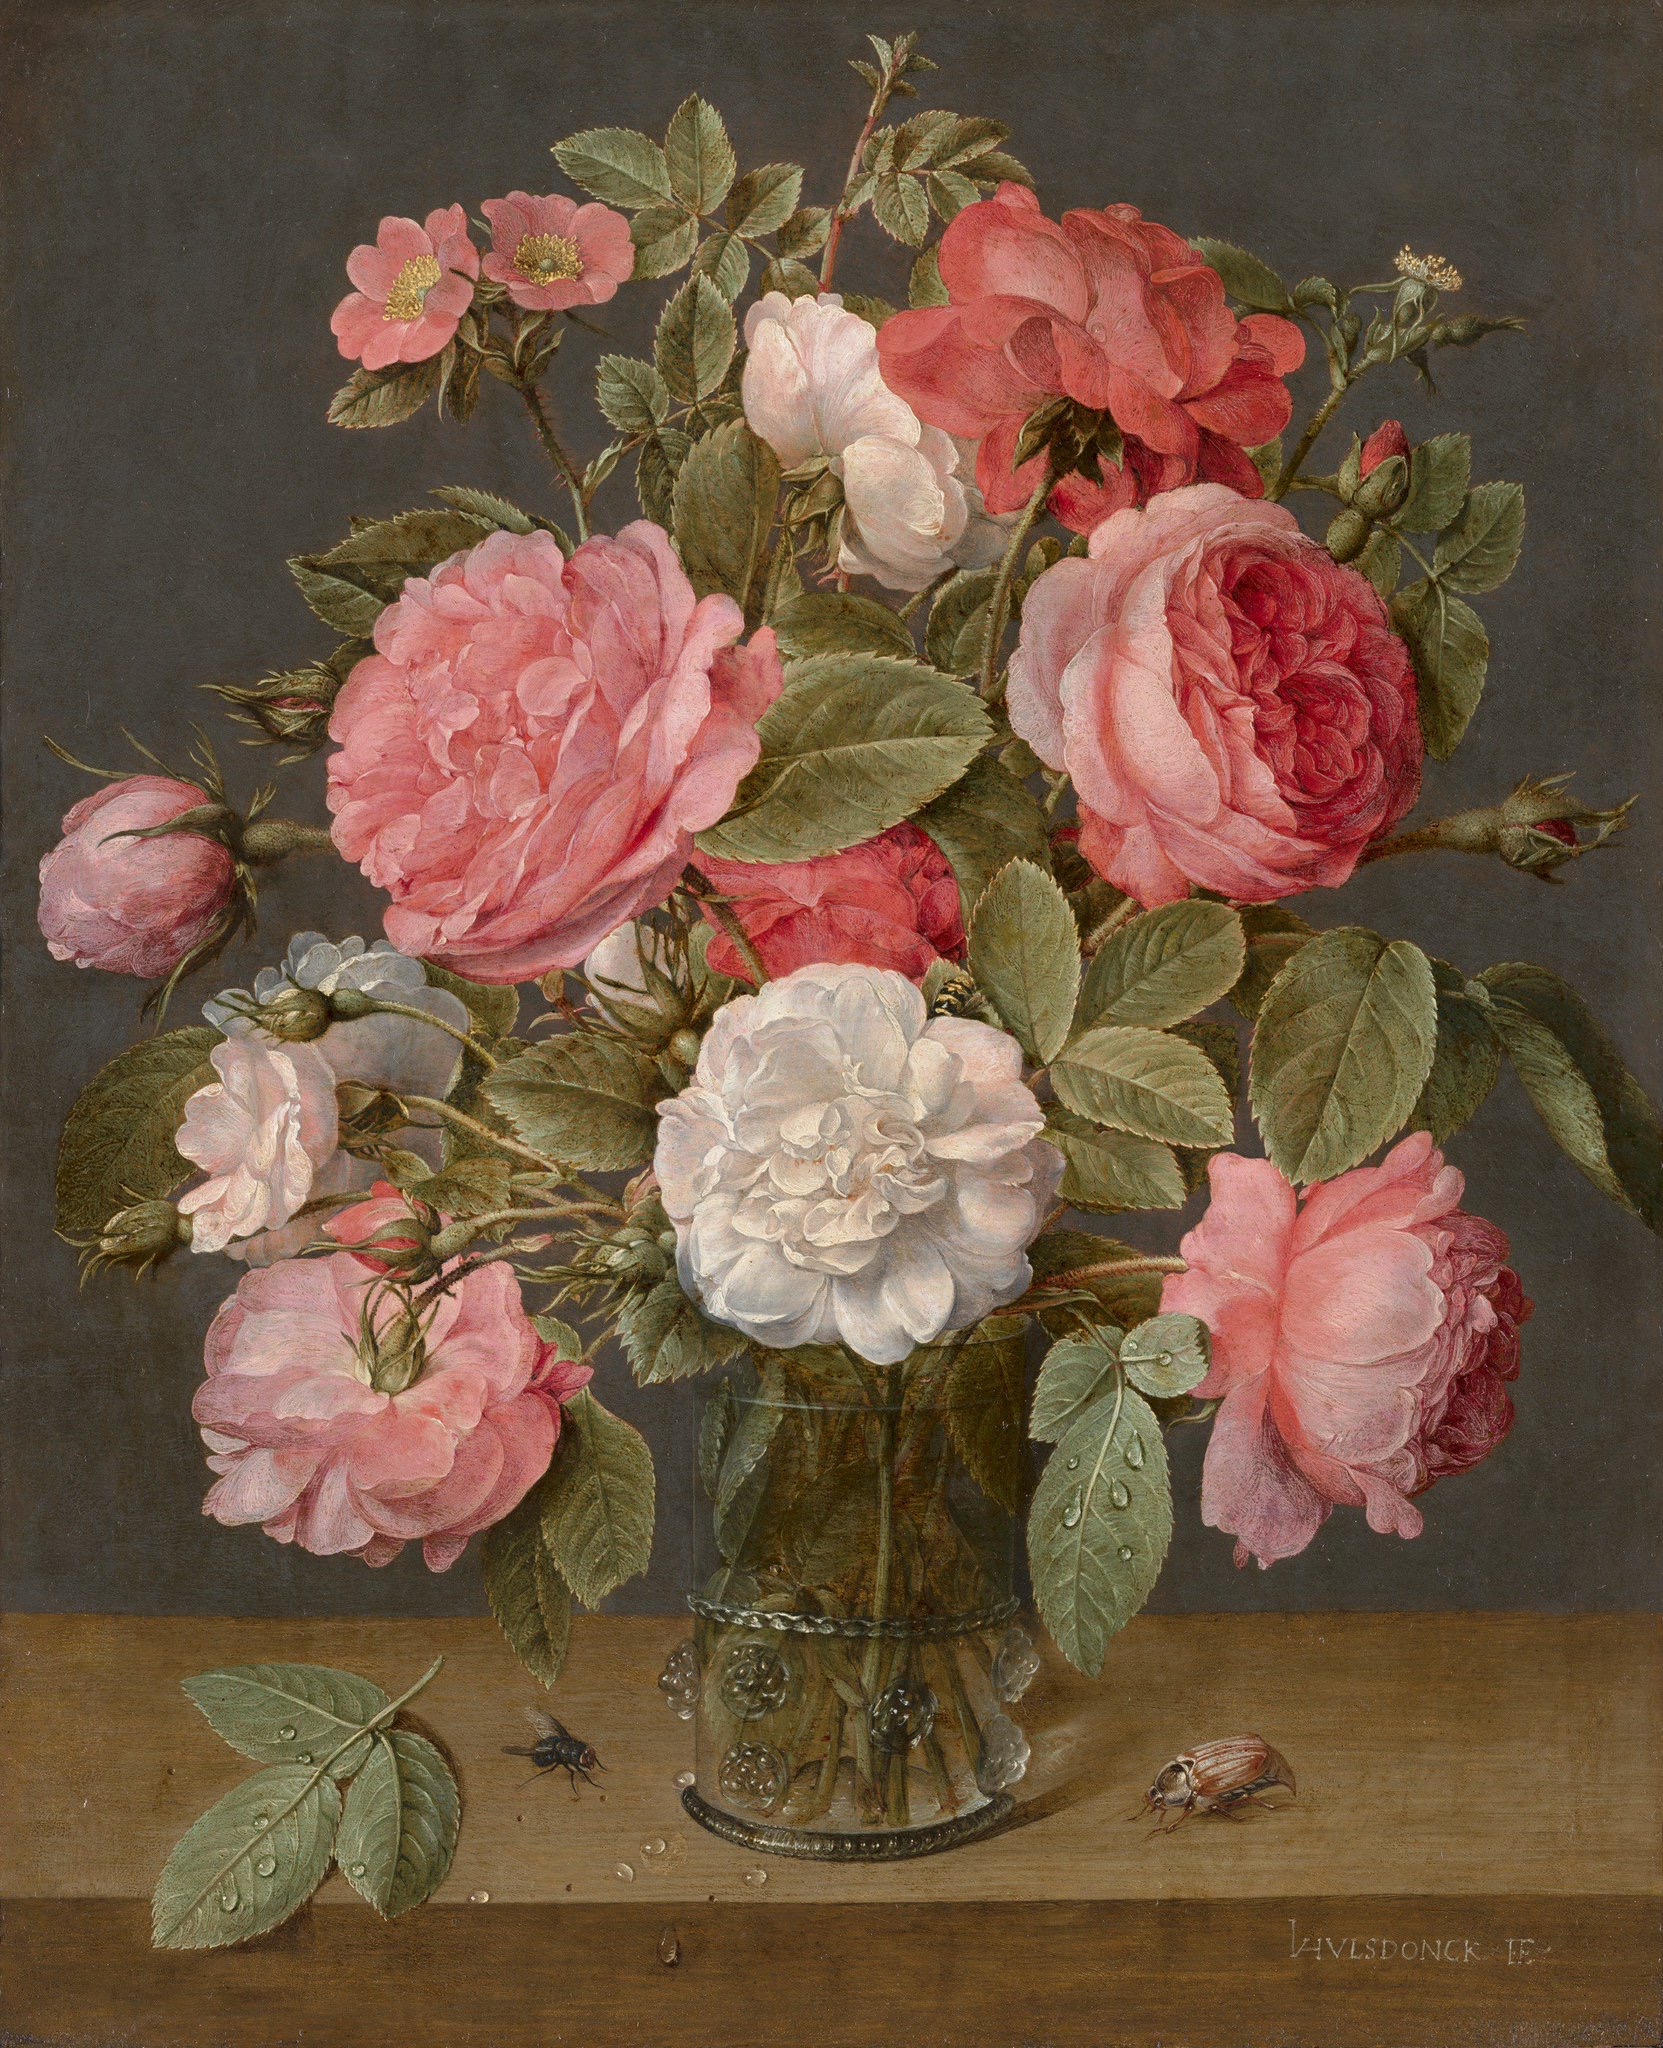 Roses in a Glass Vase, by Jacob van Hulsdonck, circa 1640-45